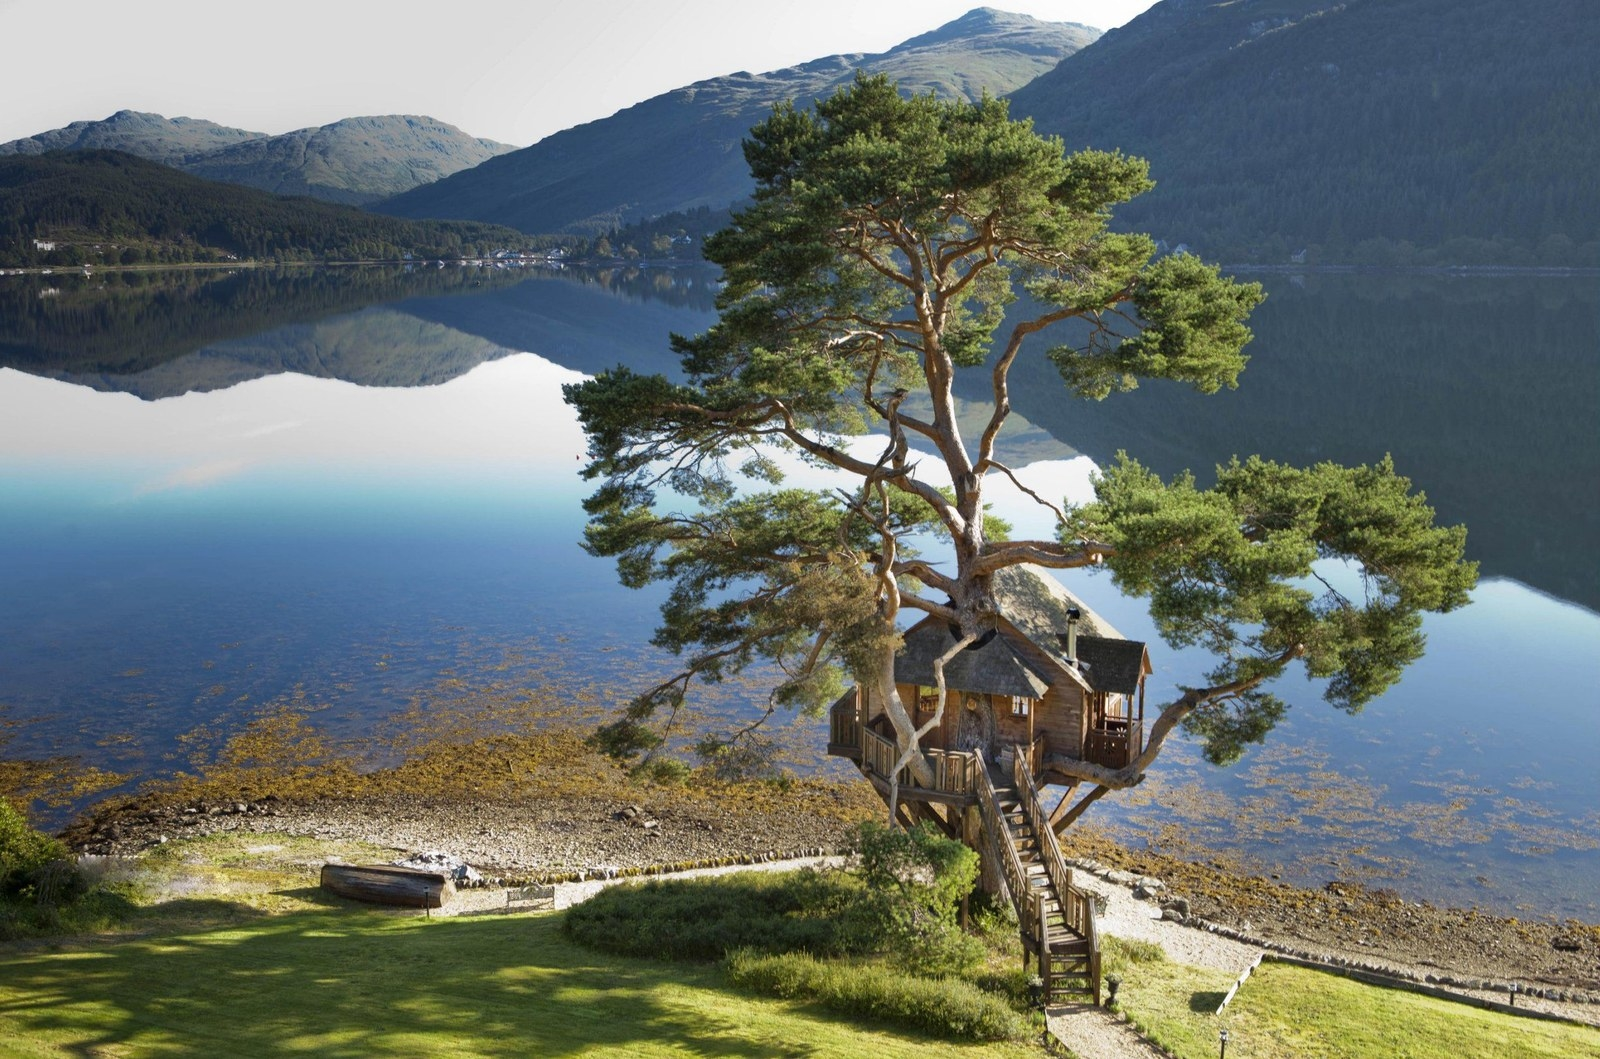 Charming Treehouse In Scotland Part - 3: The Treehouse At Loch Goil, Argyll.